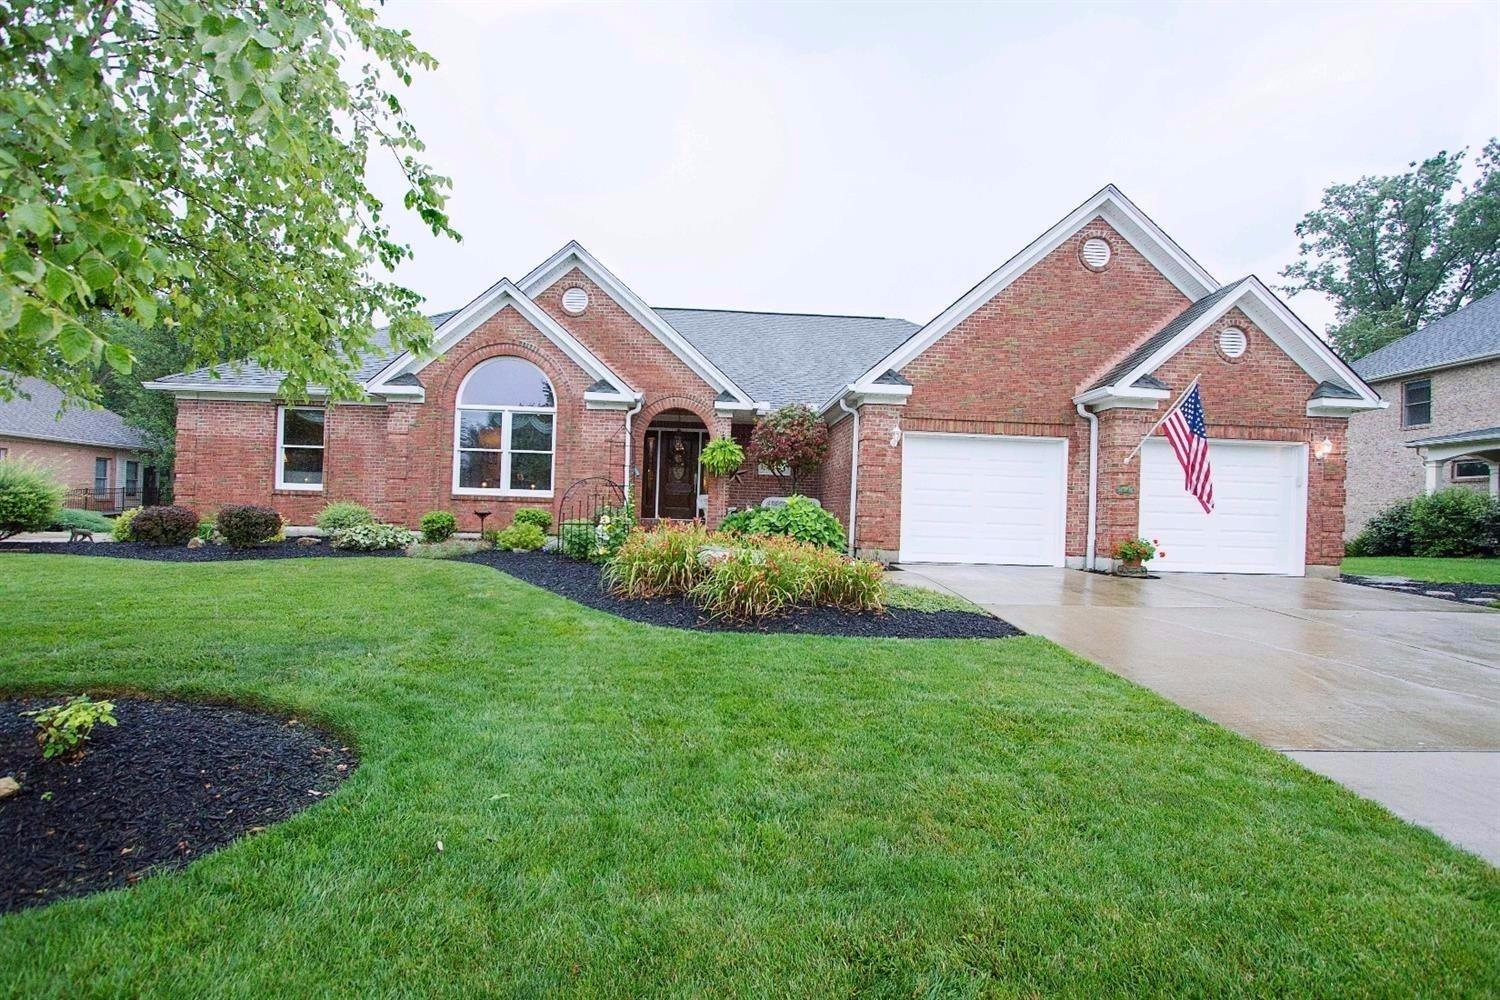 7529 Nordan Drive, West Chester, OH 45069